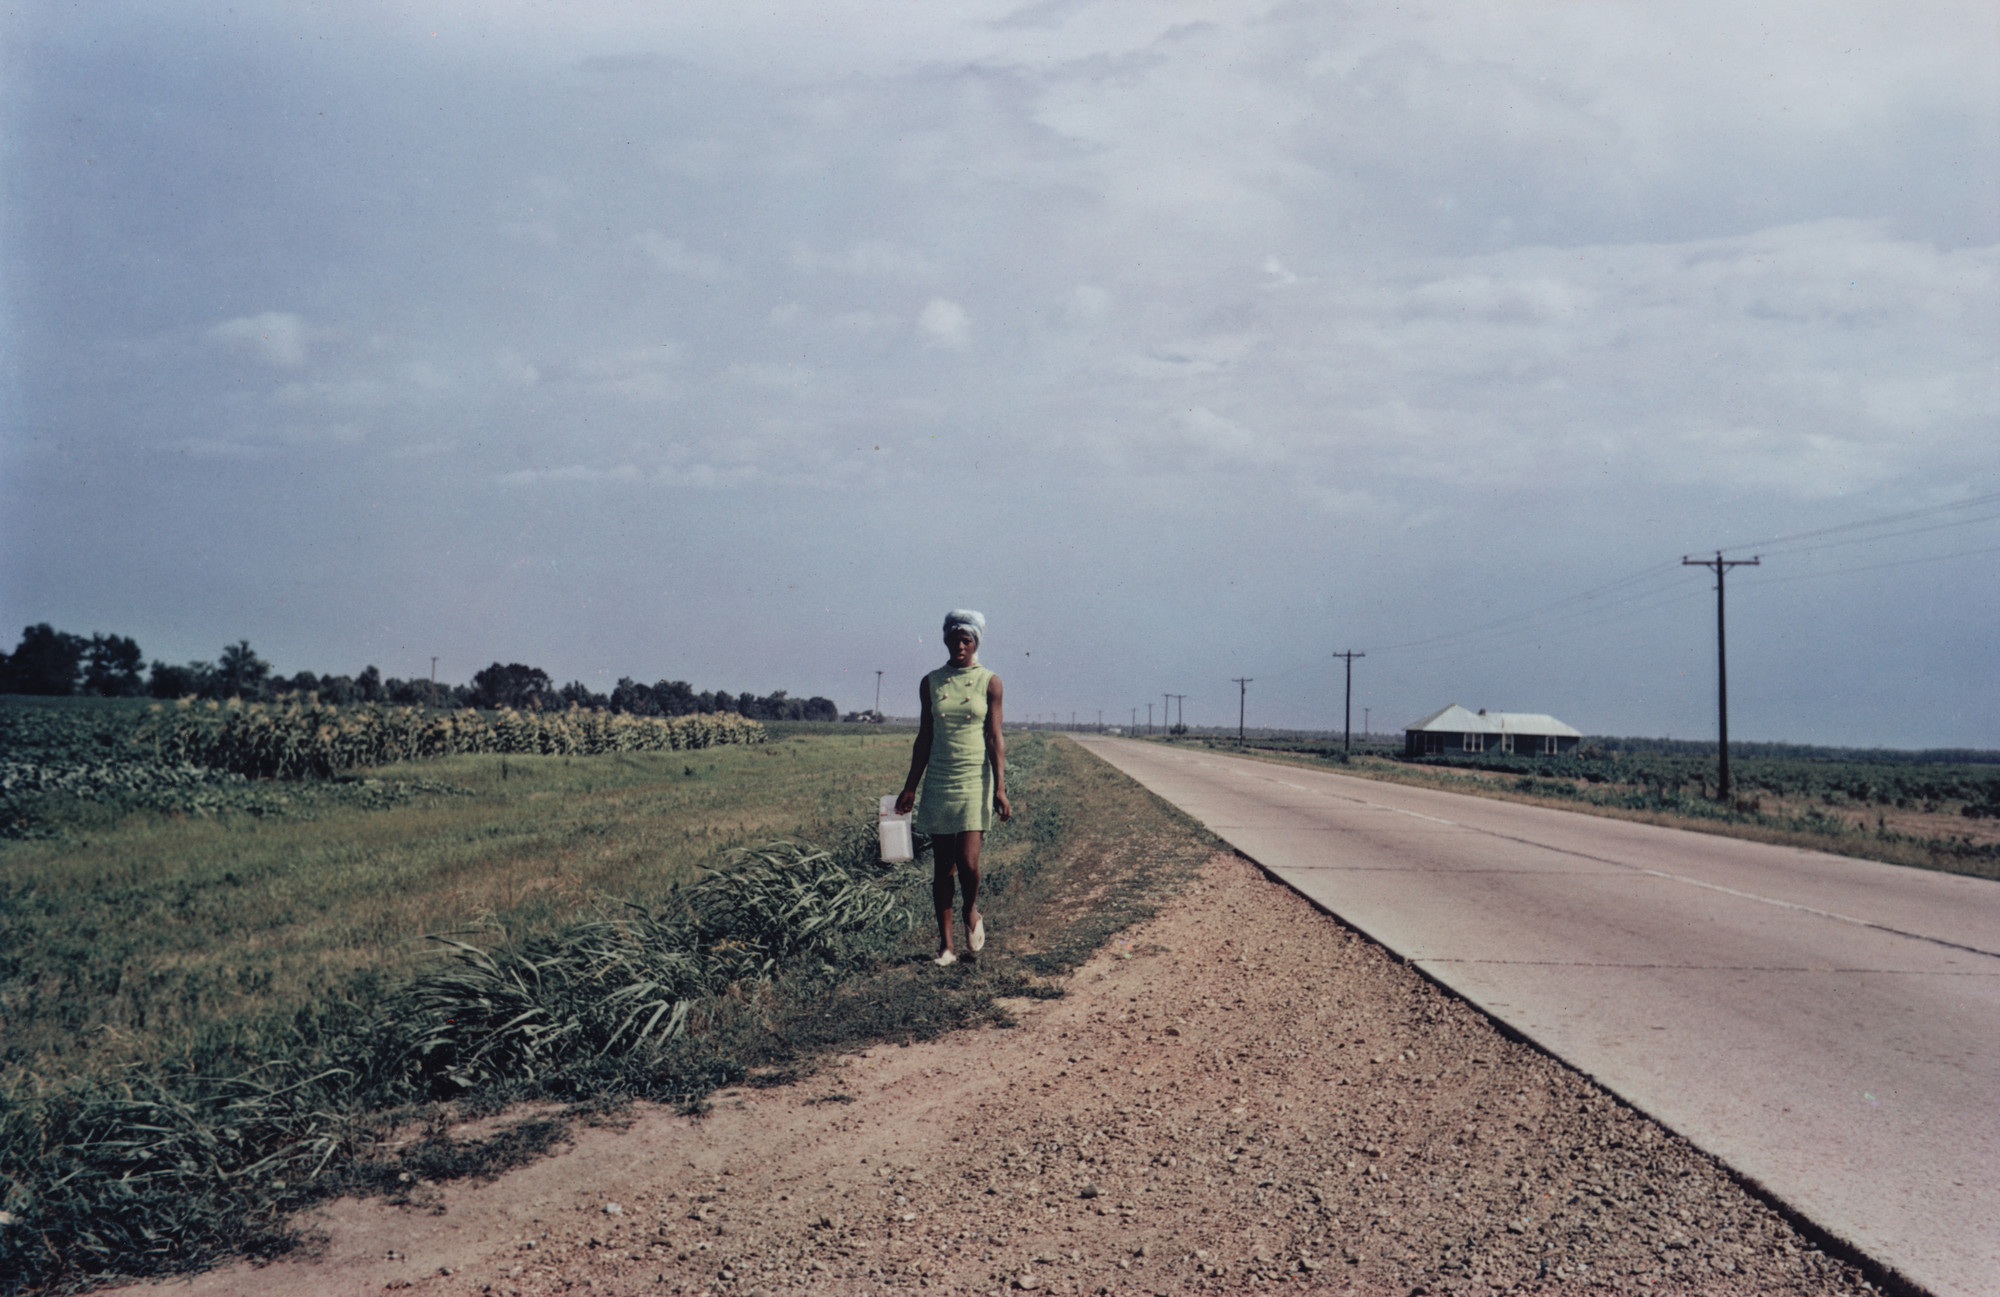 William Eggleston. Near Minter City and Glendora, Mississippi. c. 1969-70